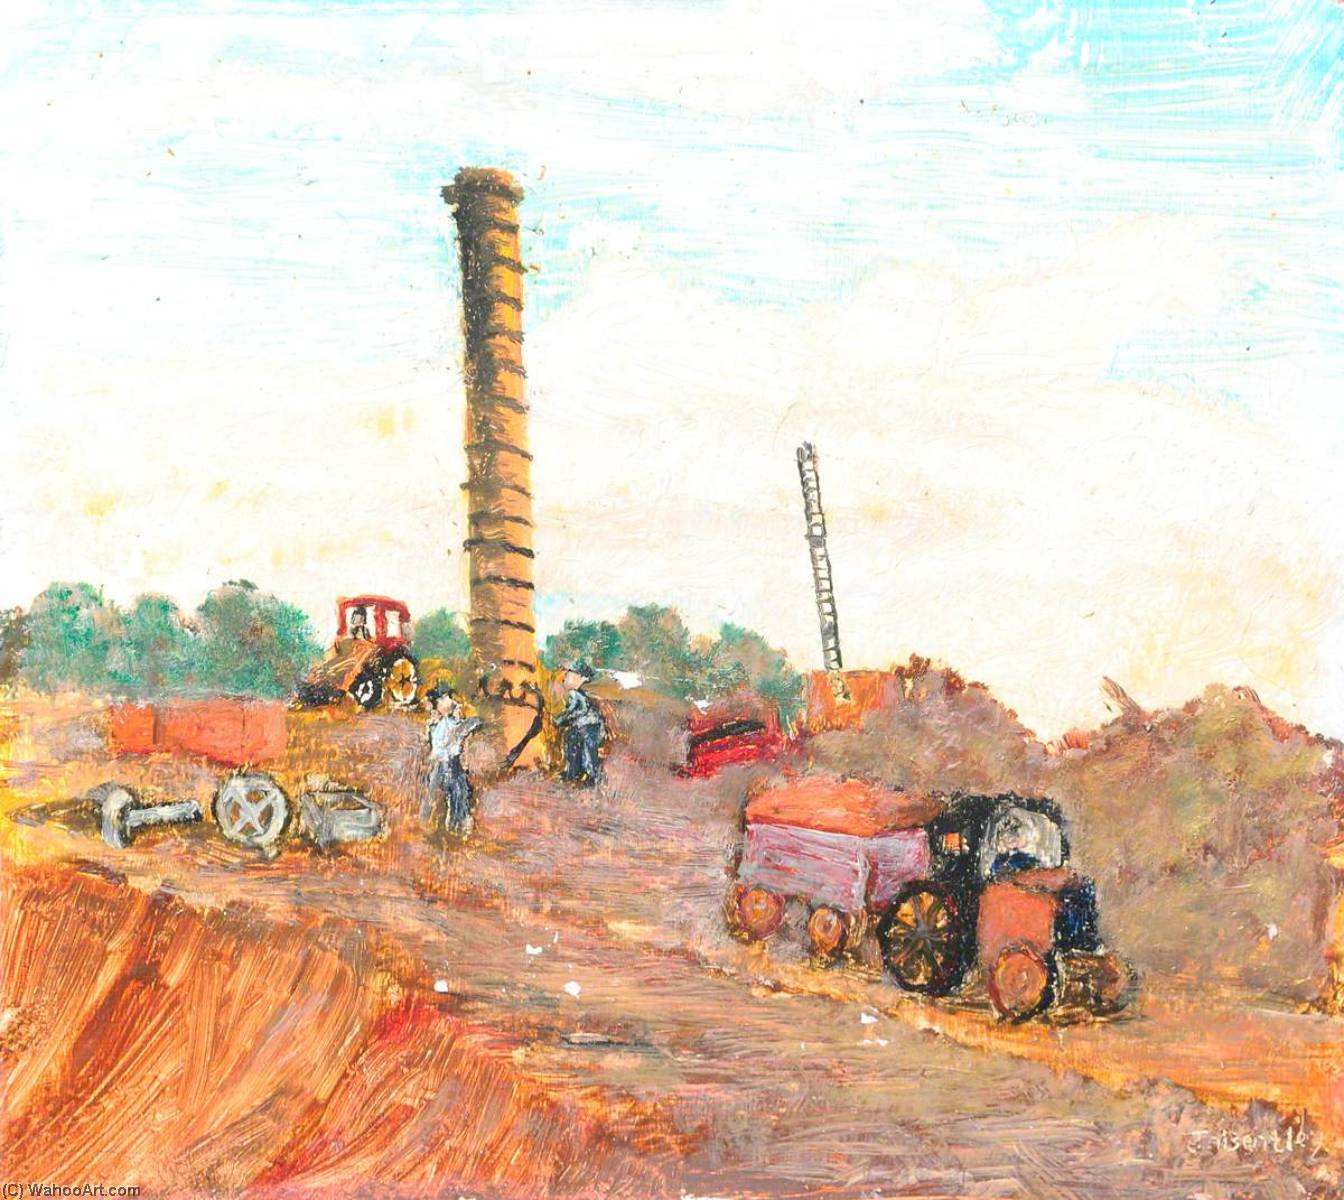 The Last Day of Demolition of Caterall`s Trap Brickworks by James Bentley | Oil Painting | WahooArt.com